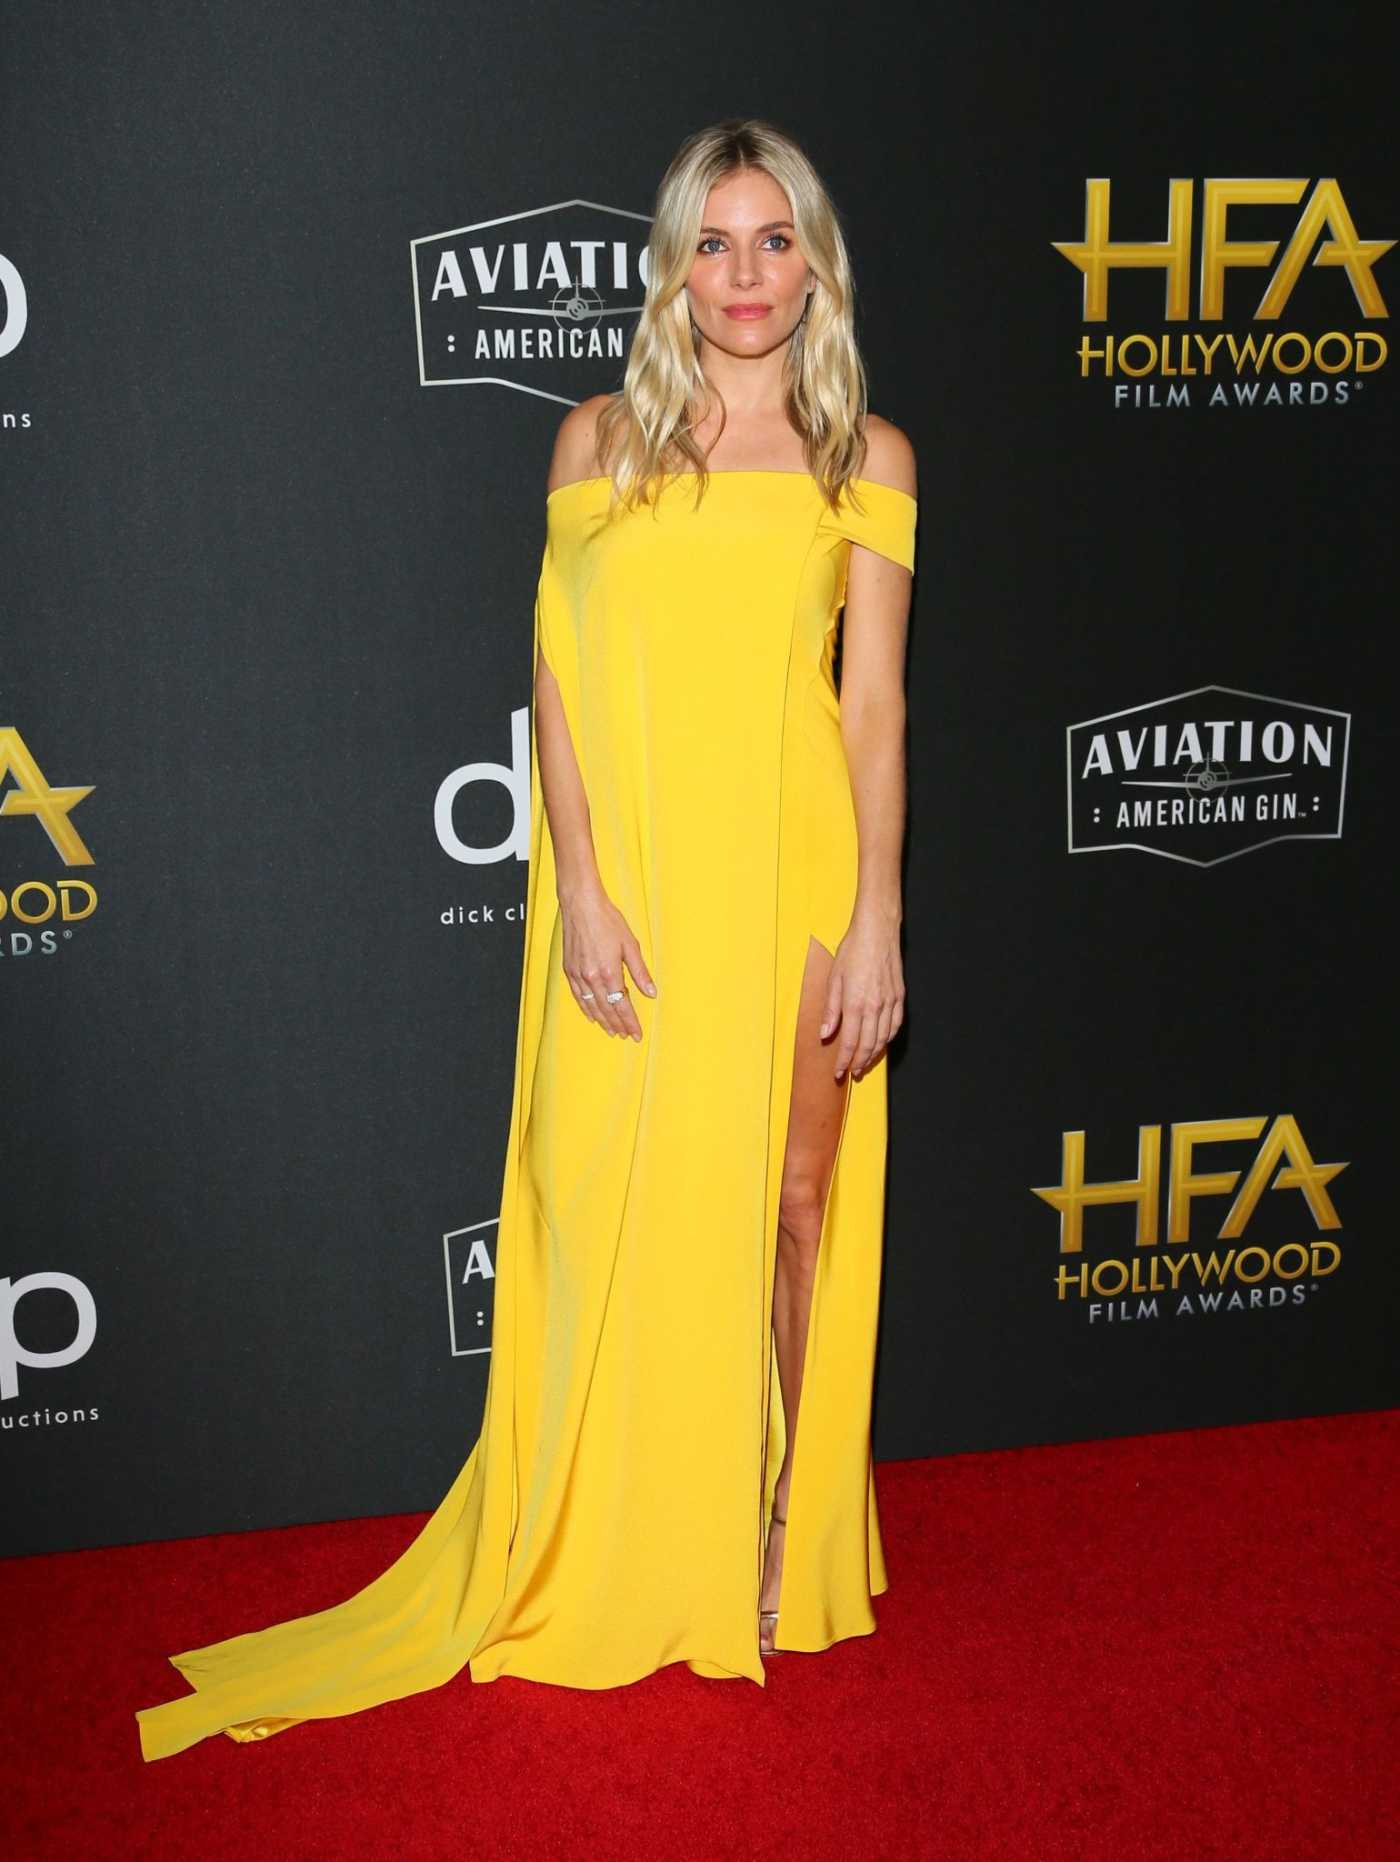 Sienna Miller Attends the 23rd Annual Hollywood Film Awards at The Beverly Hilton Hotel in Beverly Hills 11/03/2019